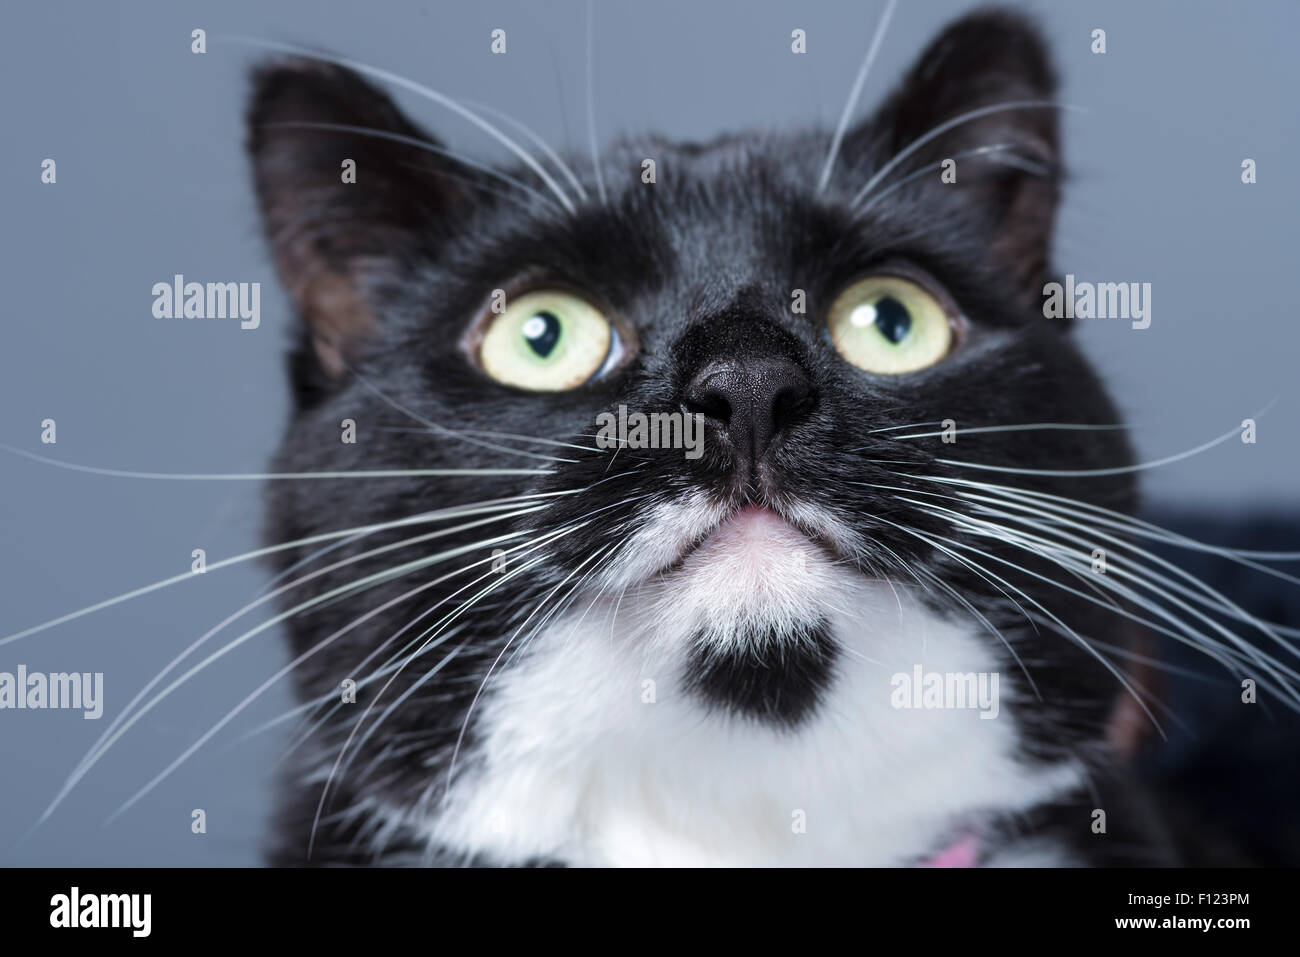 Close up of a black and white domestic cat looking upwards. - Stock Image